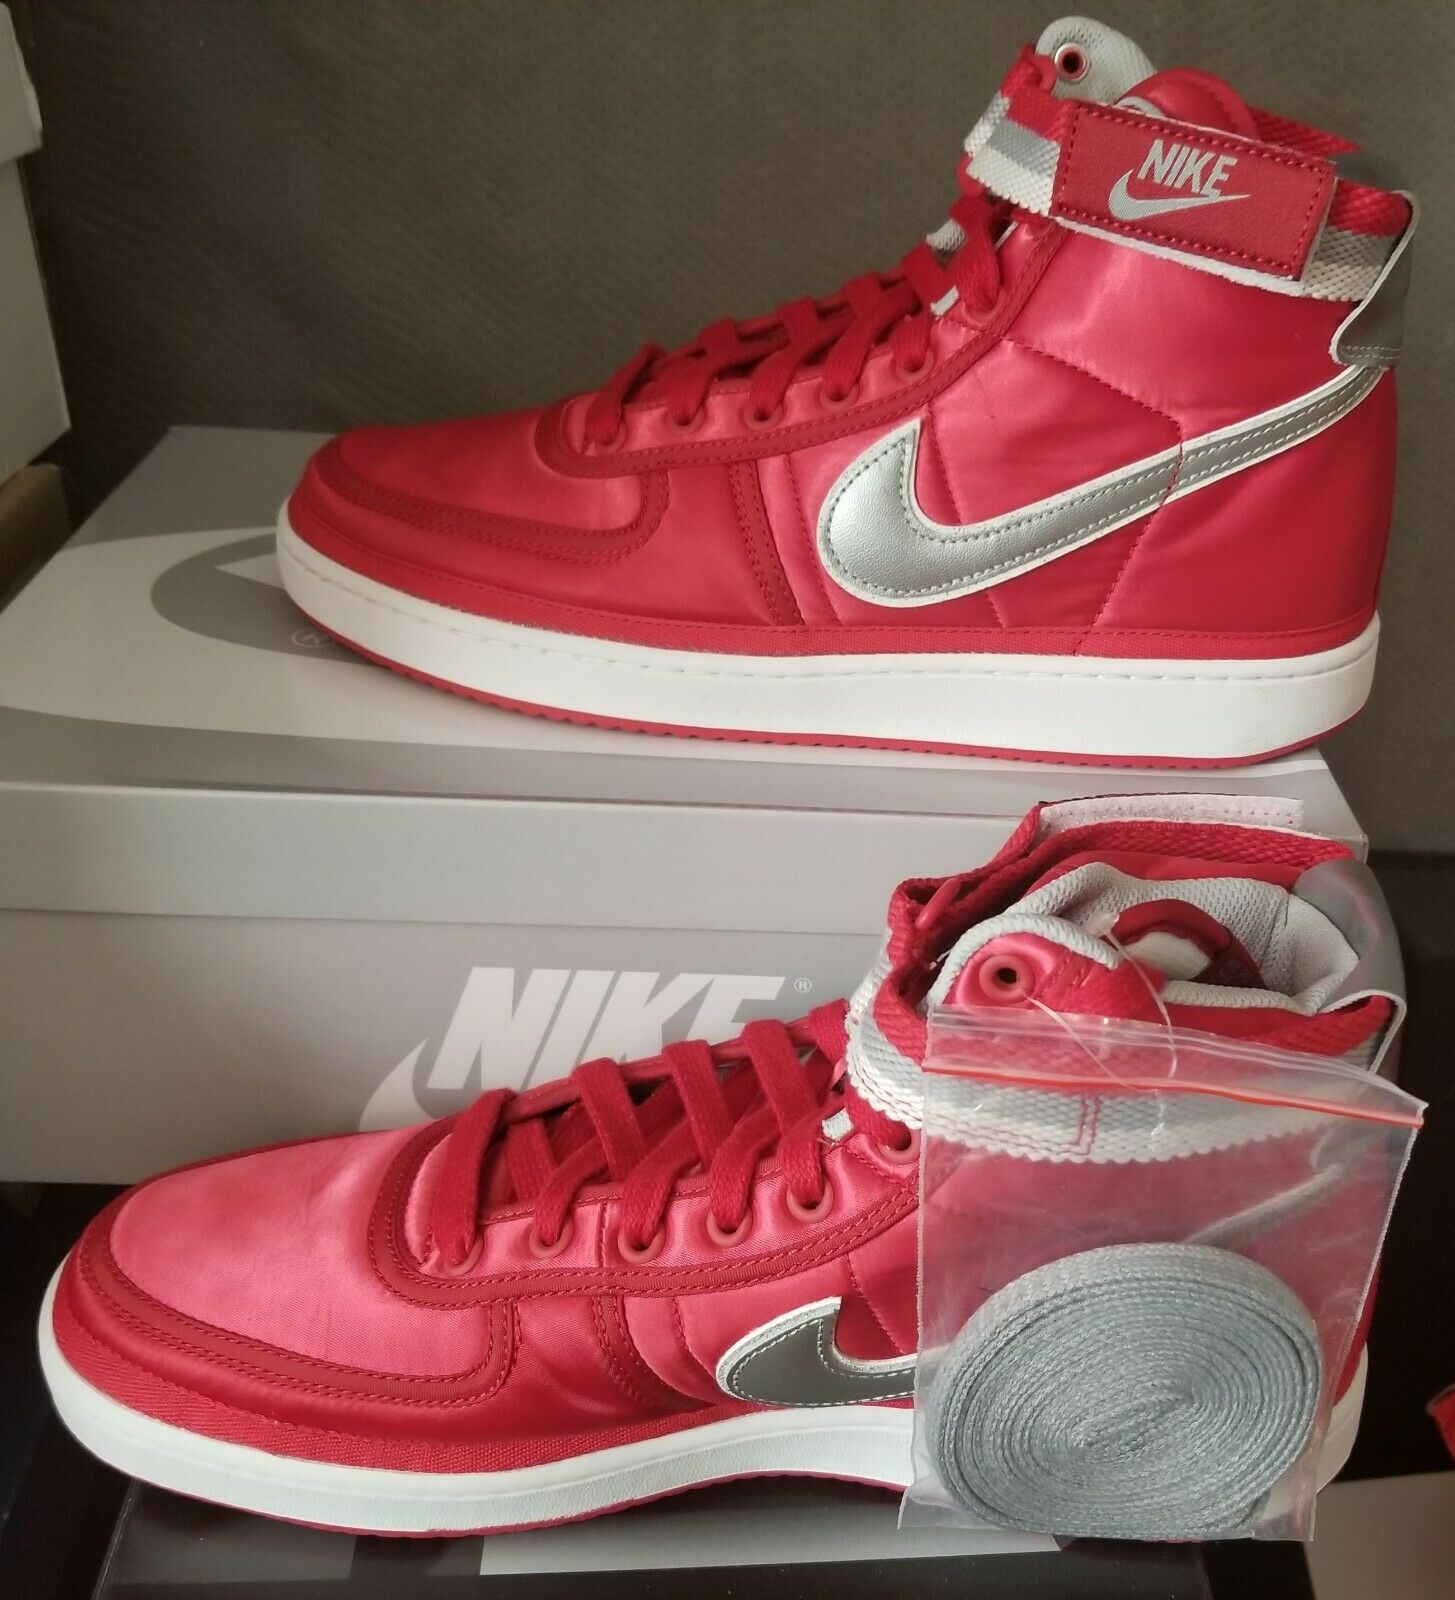 NEW AUTHENTIC NIKE VANDAL HIGH SUPREME MEN'S US 10